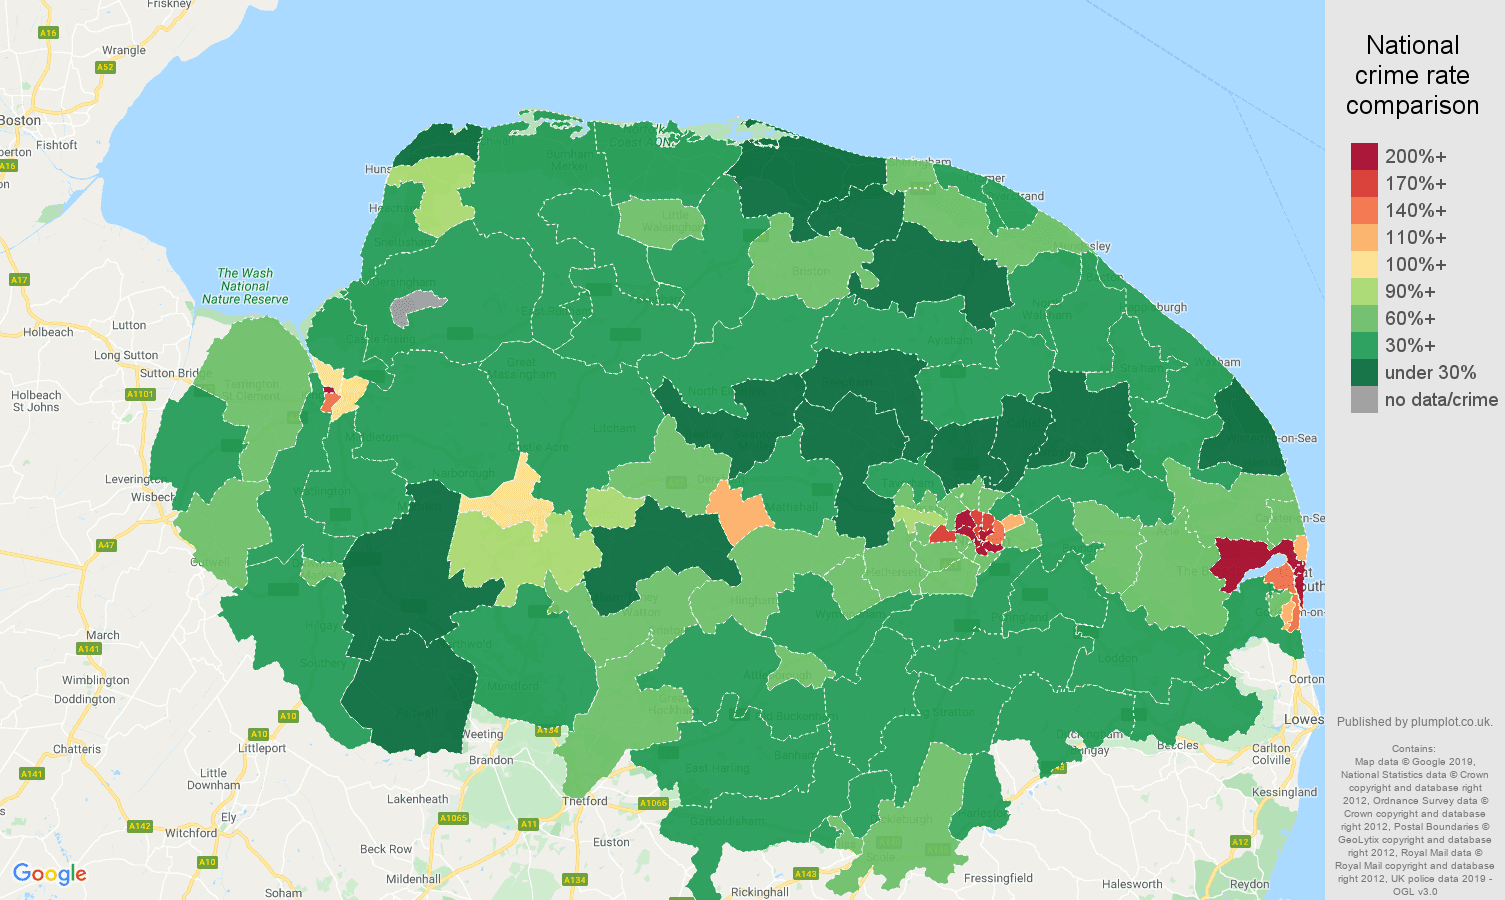 Norfolk public order crime rate comparison map